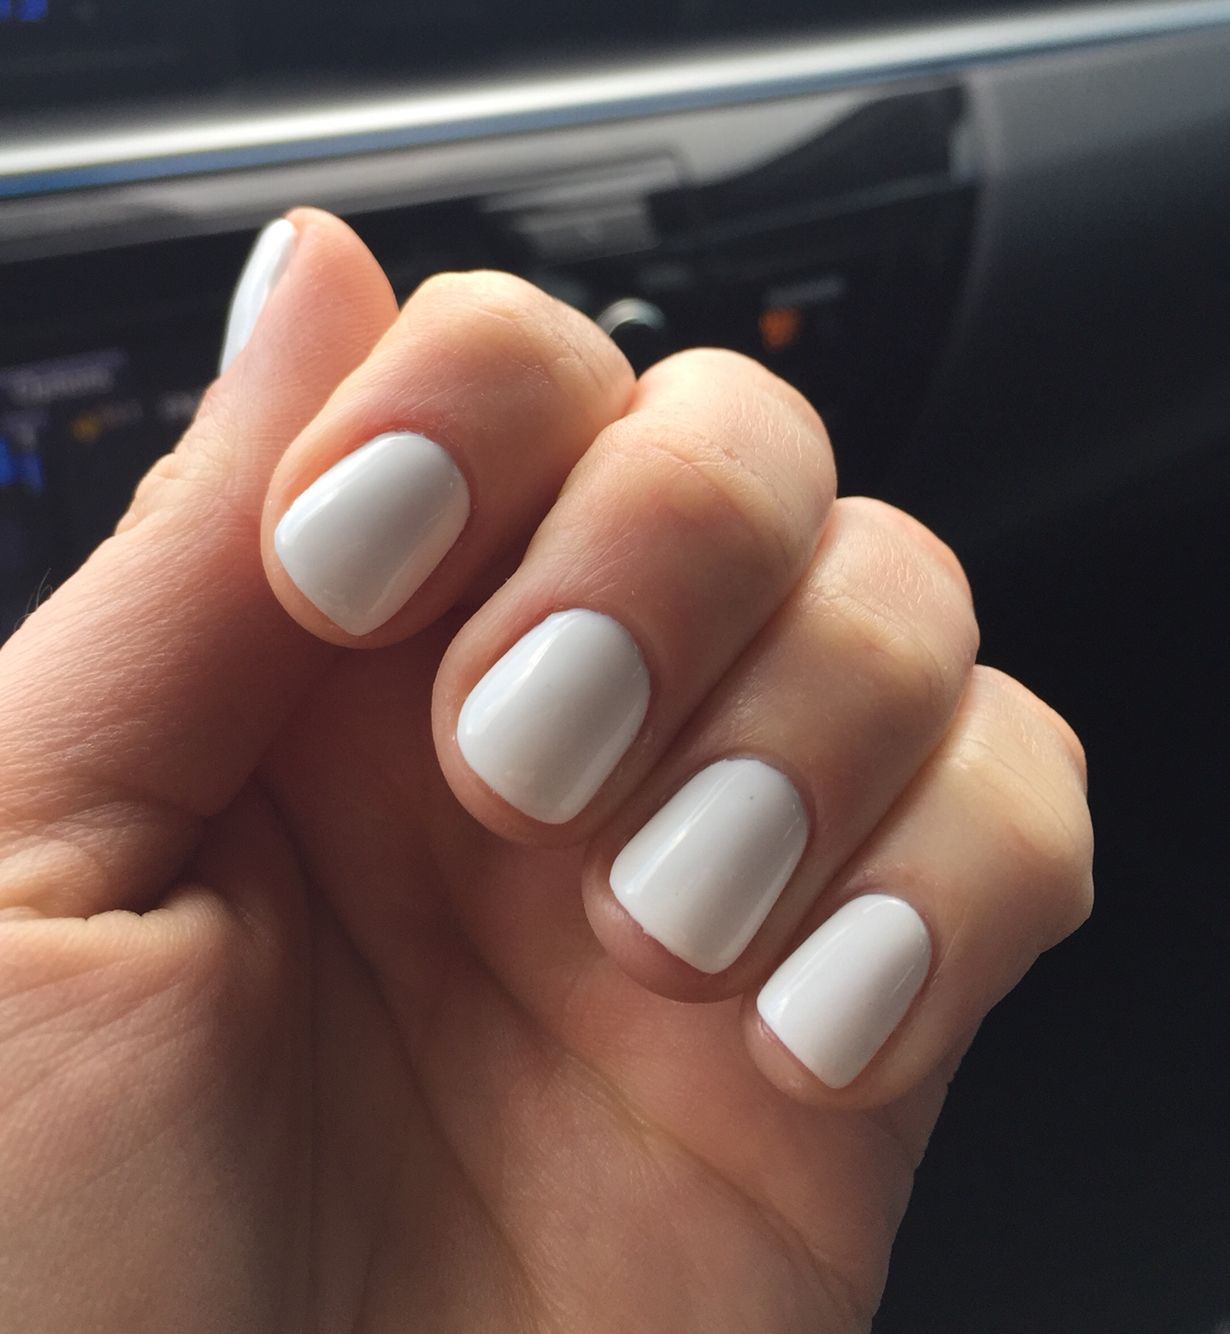 There This Is Nice Classy And Simple Not Like Those Long Claws That Some Girls Have Scary White Shellac Nails White Gel Nails White Shellac